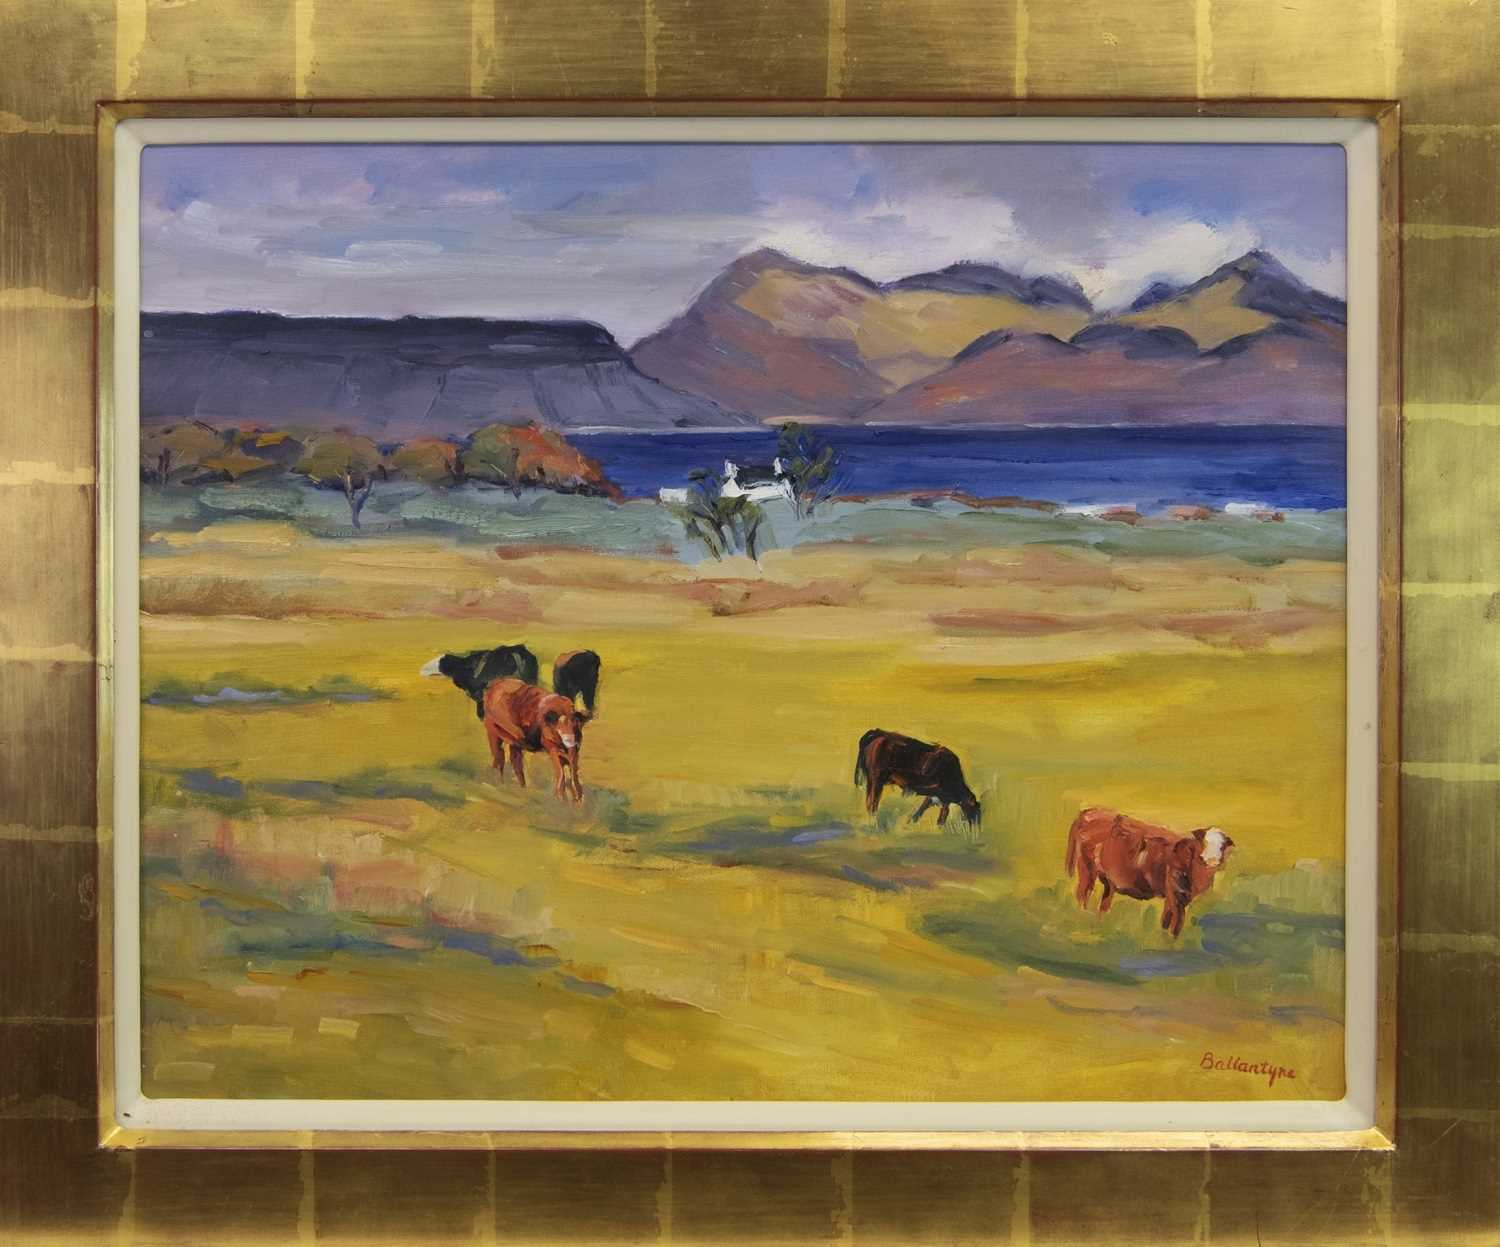 Lot 123 - INQUISITIVE COWS, ARISAIG, AN OIL BY MARGARET BALLANTYNE